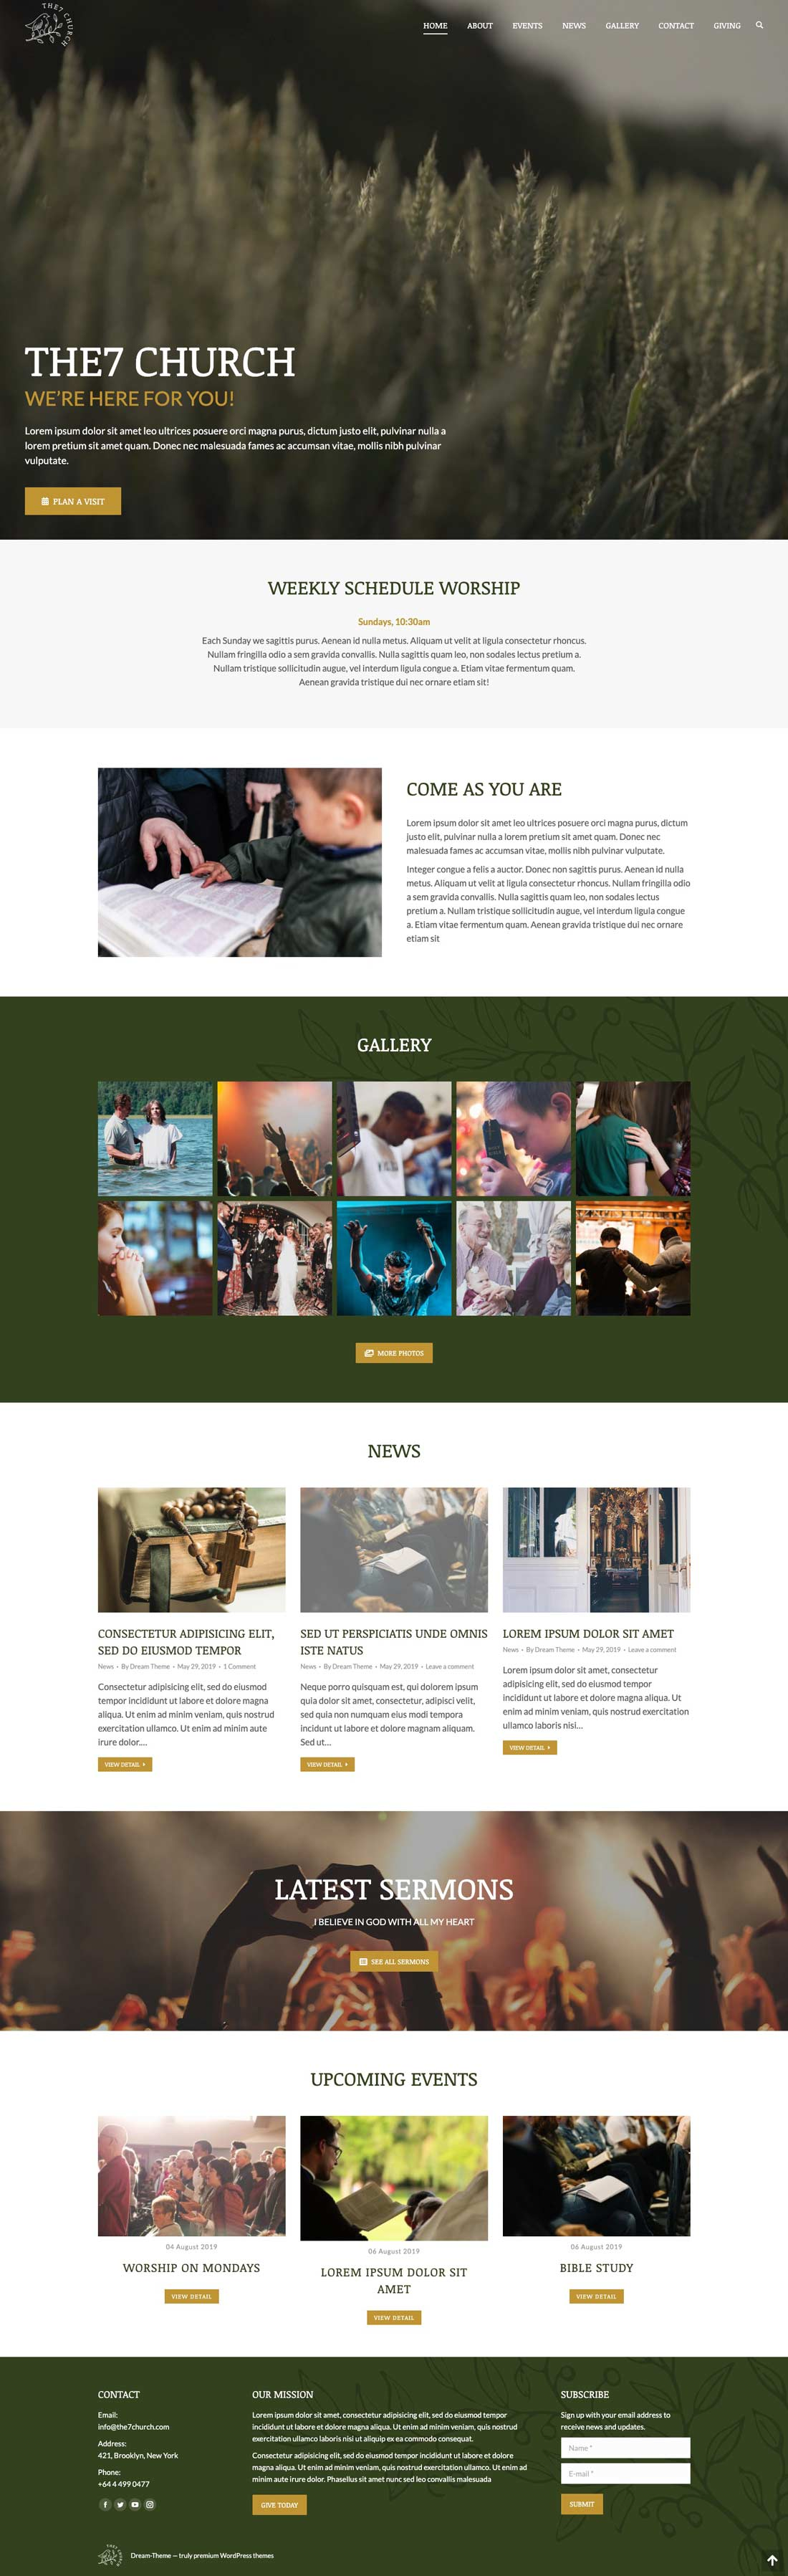 sample small business web design